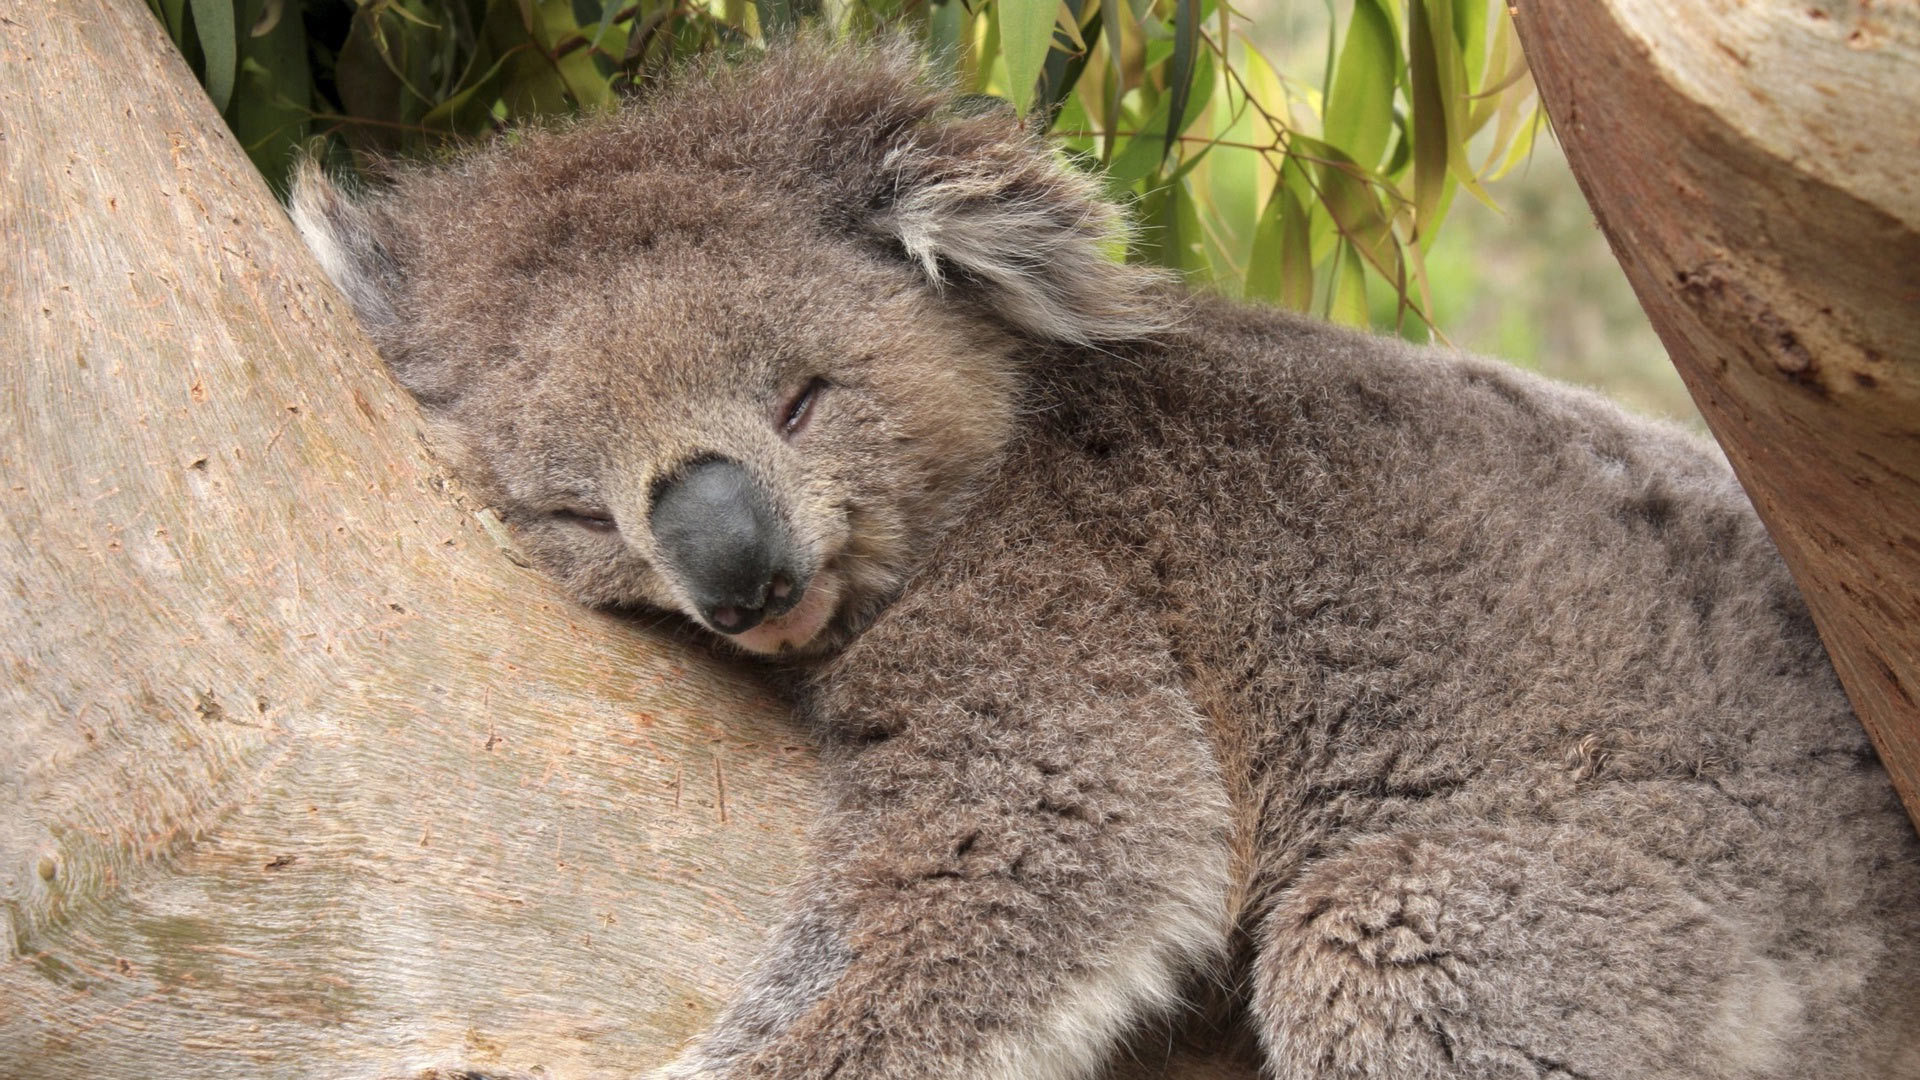 19853 download wallpaper Animals, Koalas screensavers and pictures for free